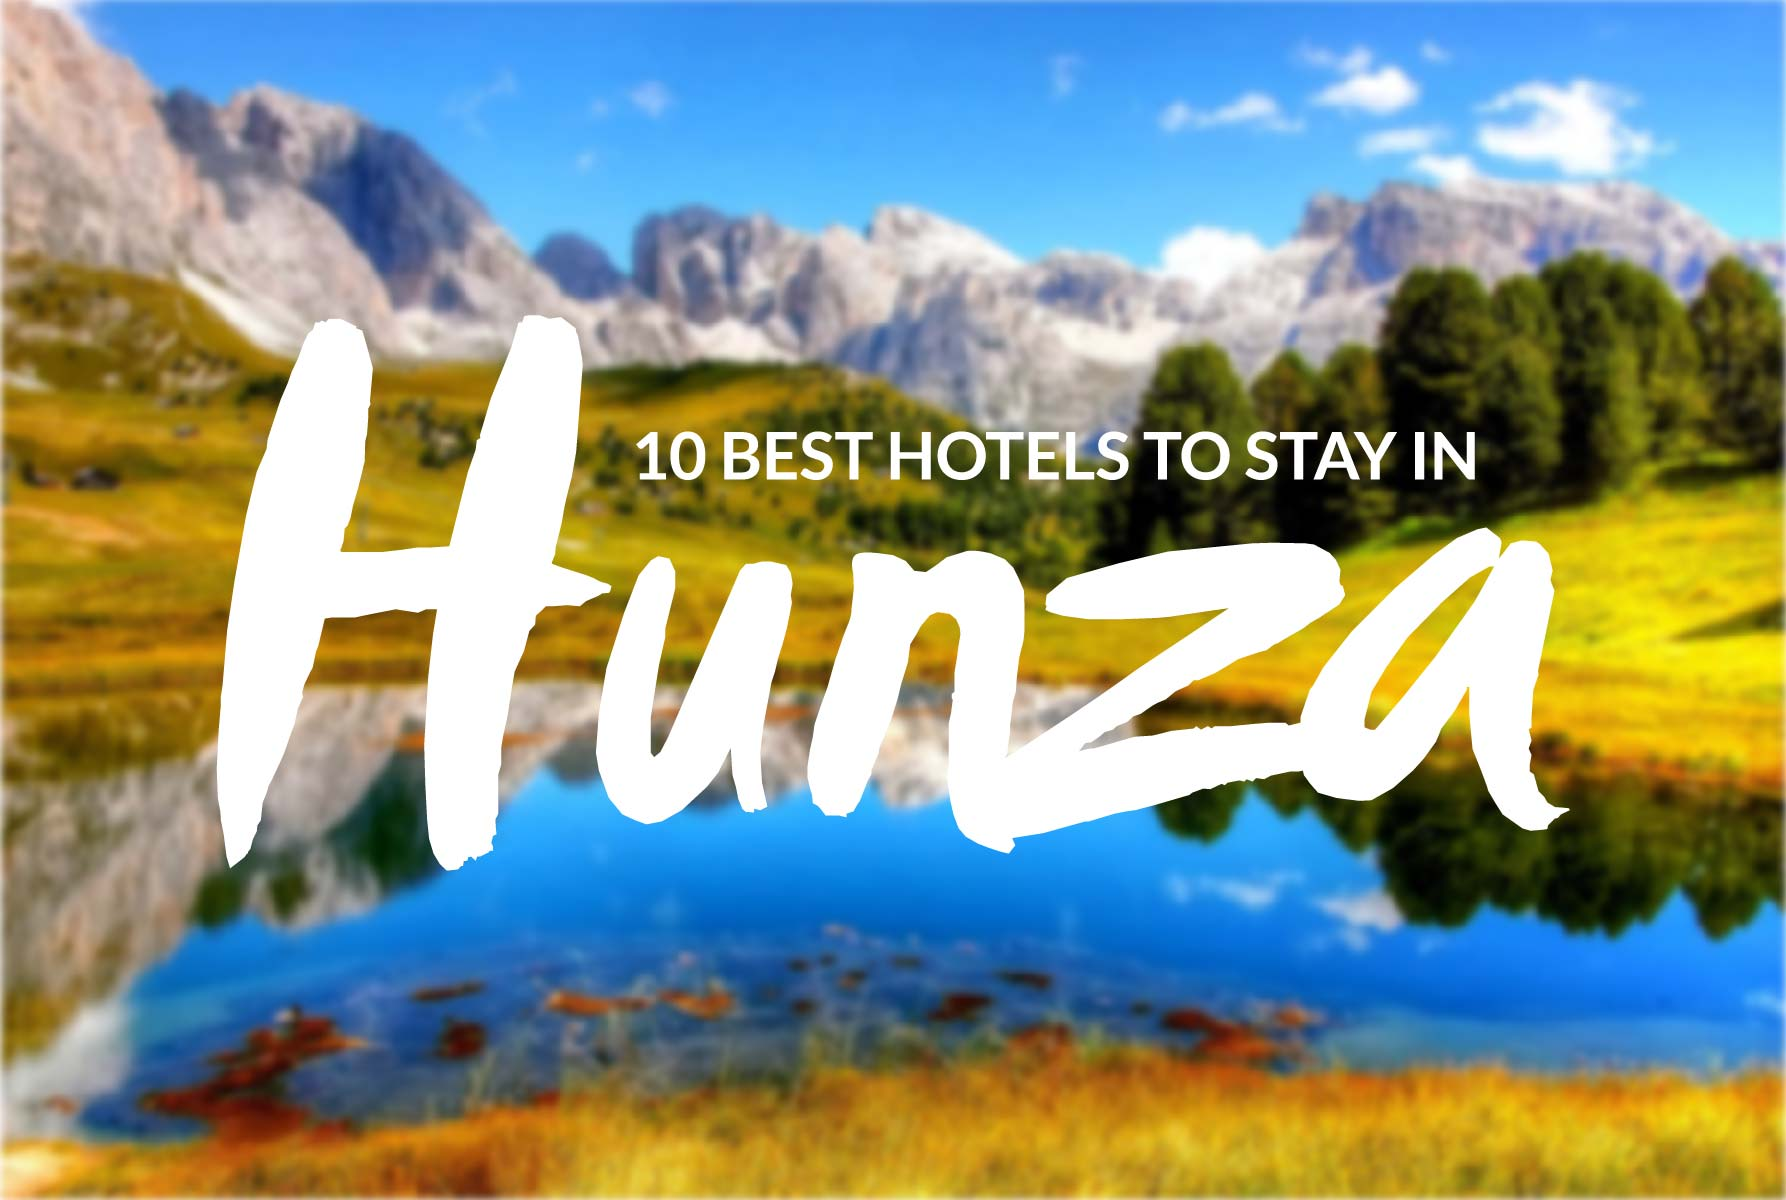 10 best Hotels to stay in Hunza